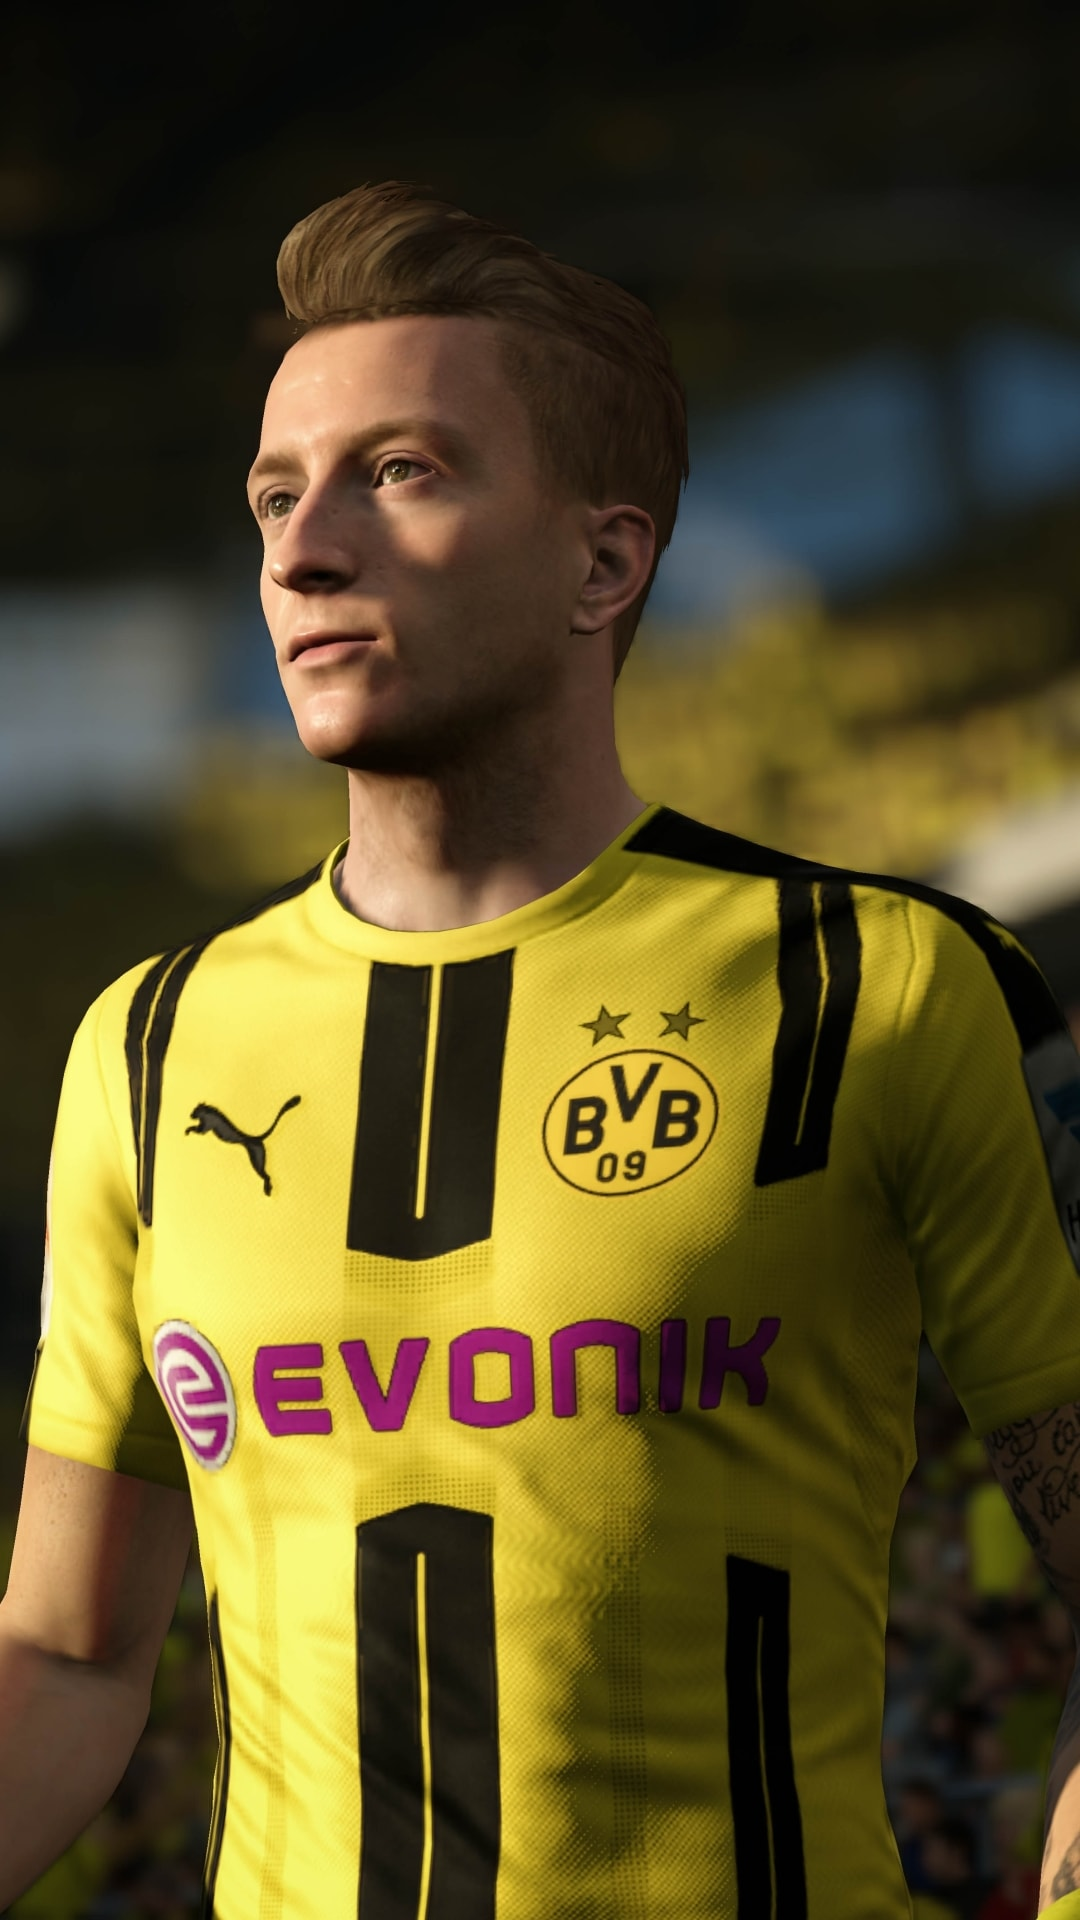 FIFA 17 Full Hd Wallpapers For Mobile